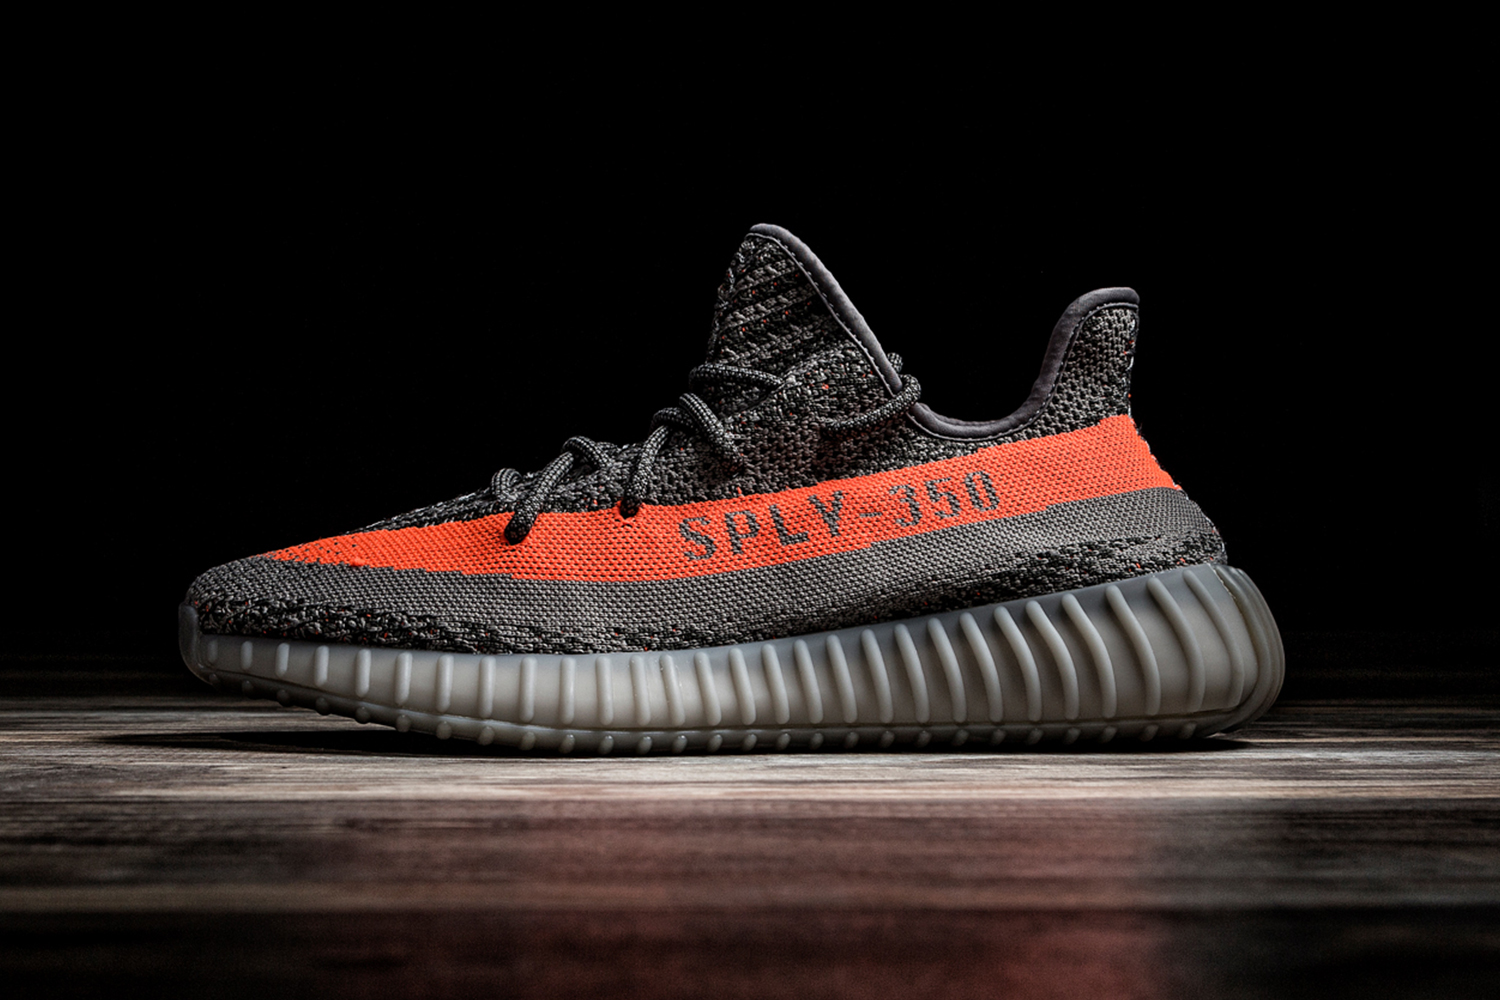 90802d3ad adidas Yeezy 350 Boost V2